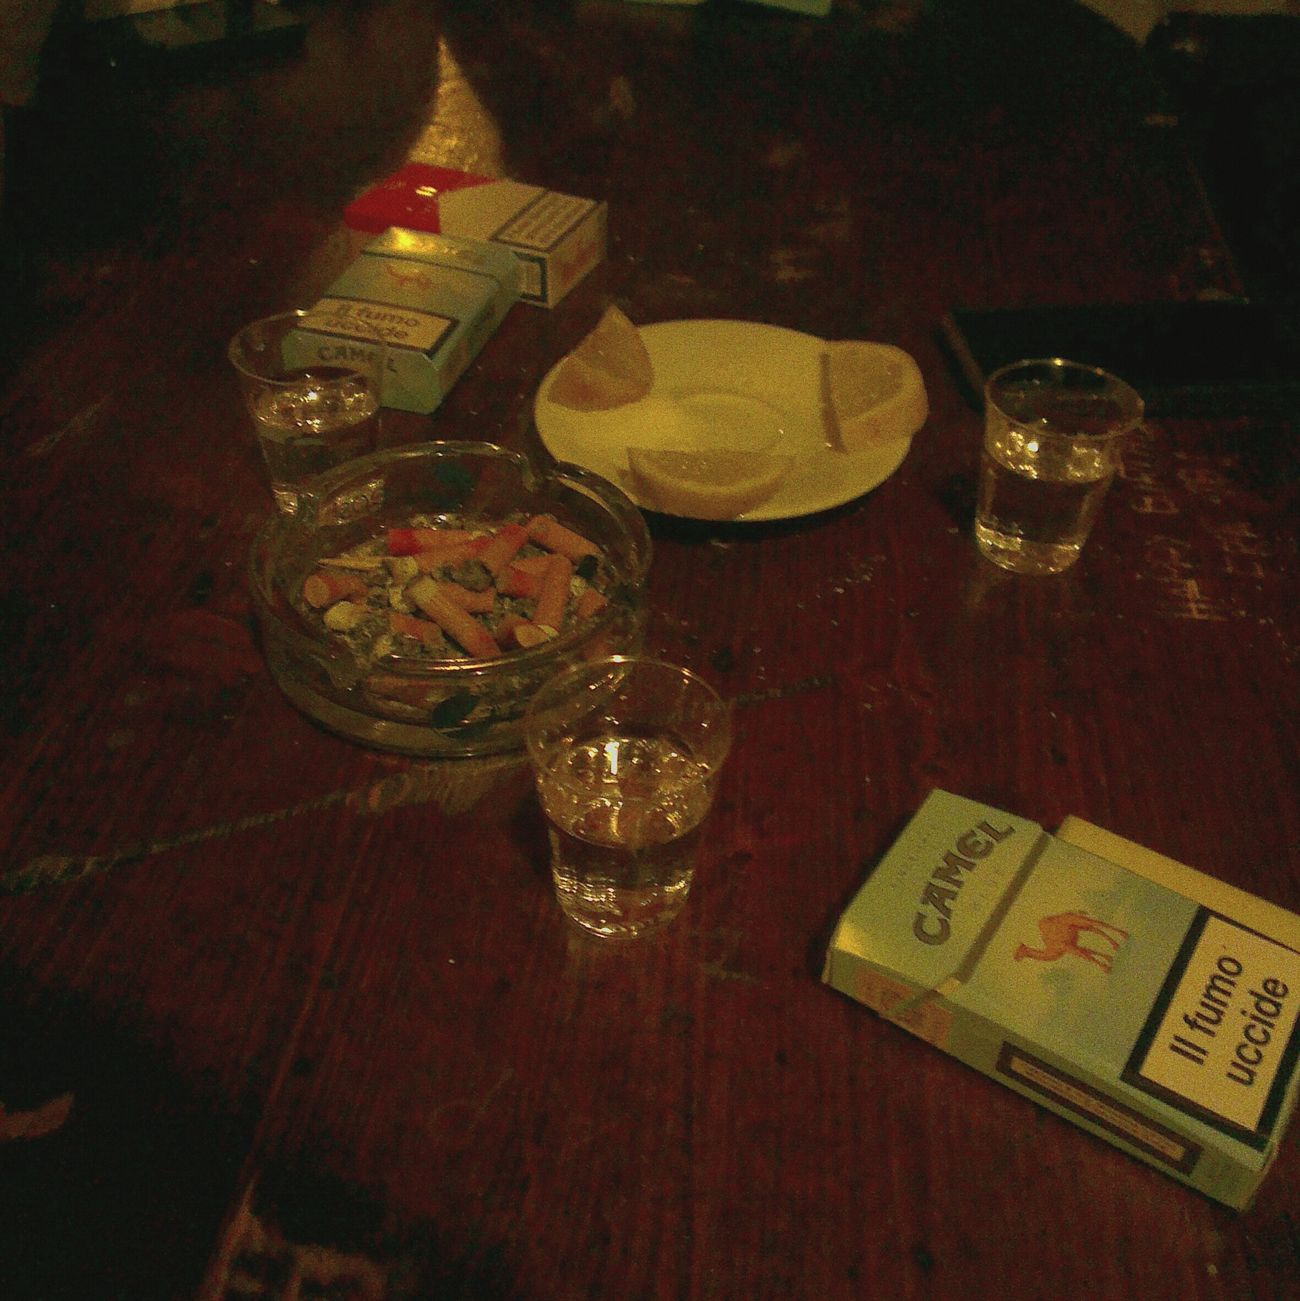 Cigarette  Tequila Shots Salt Lemon Vices Fun Birthday Eighteen  Porcoddioo